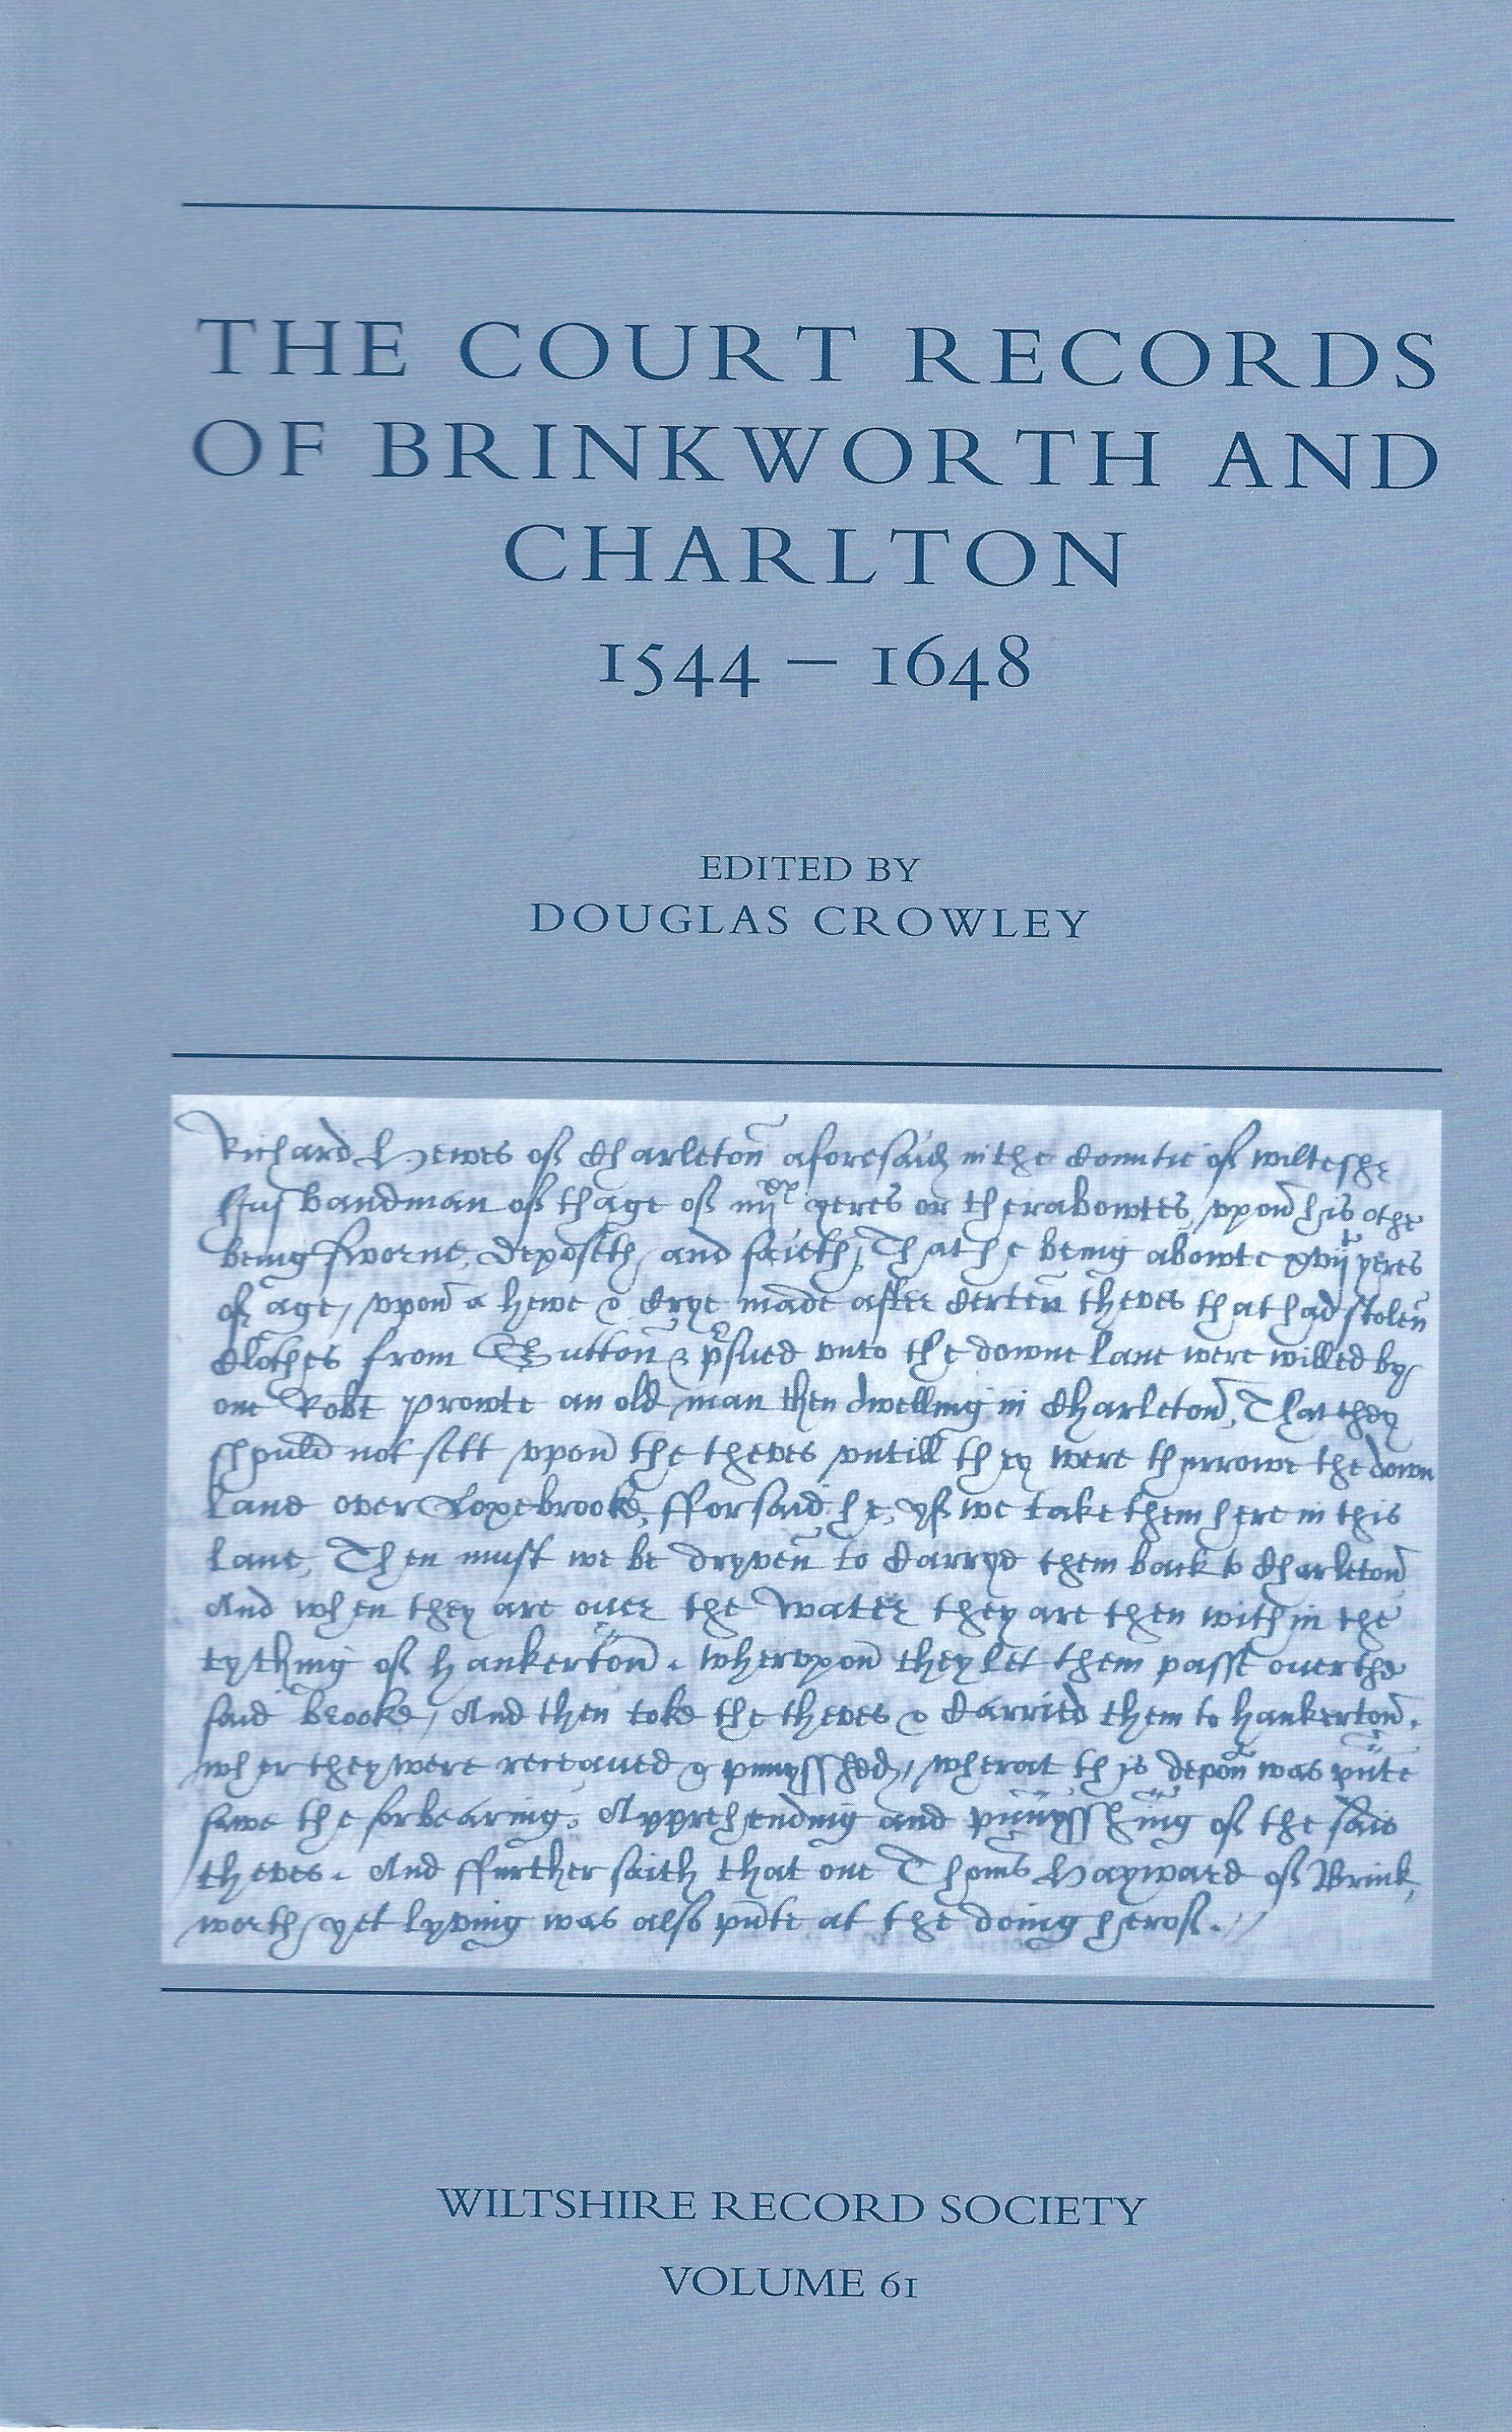 Court Records of Brinkworth and Charlton